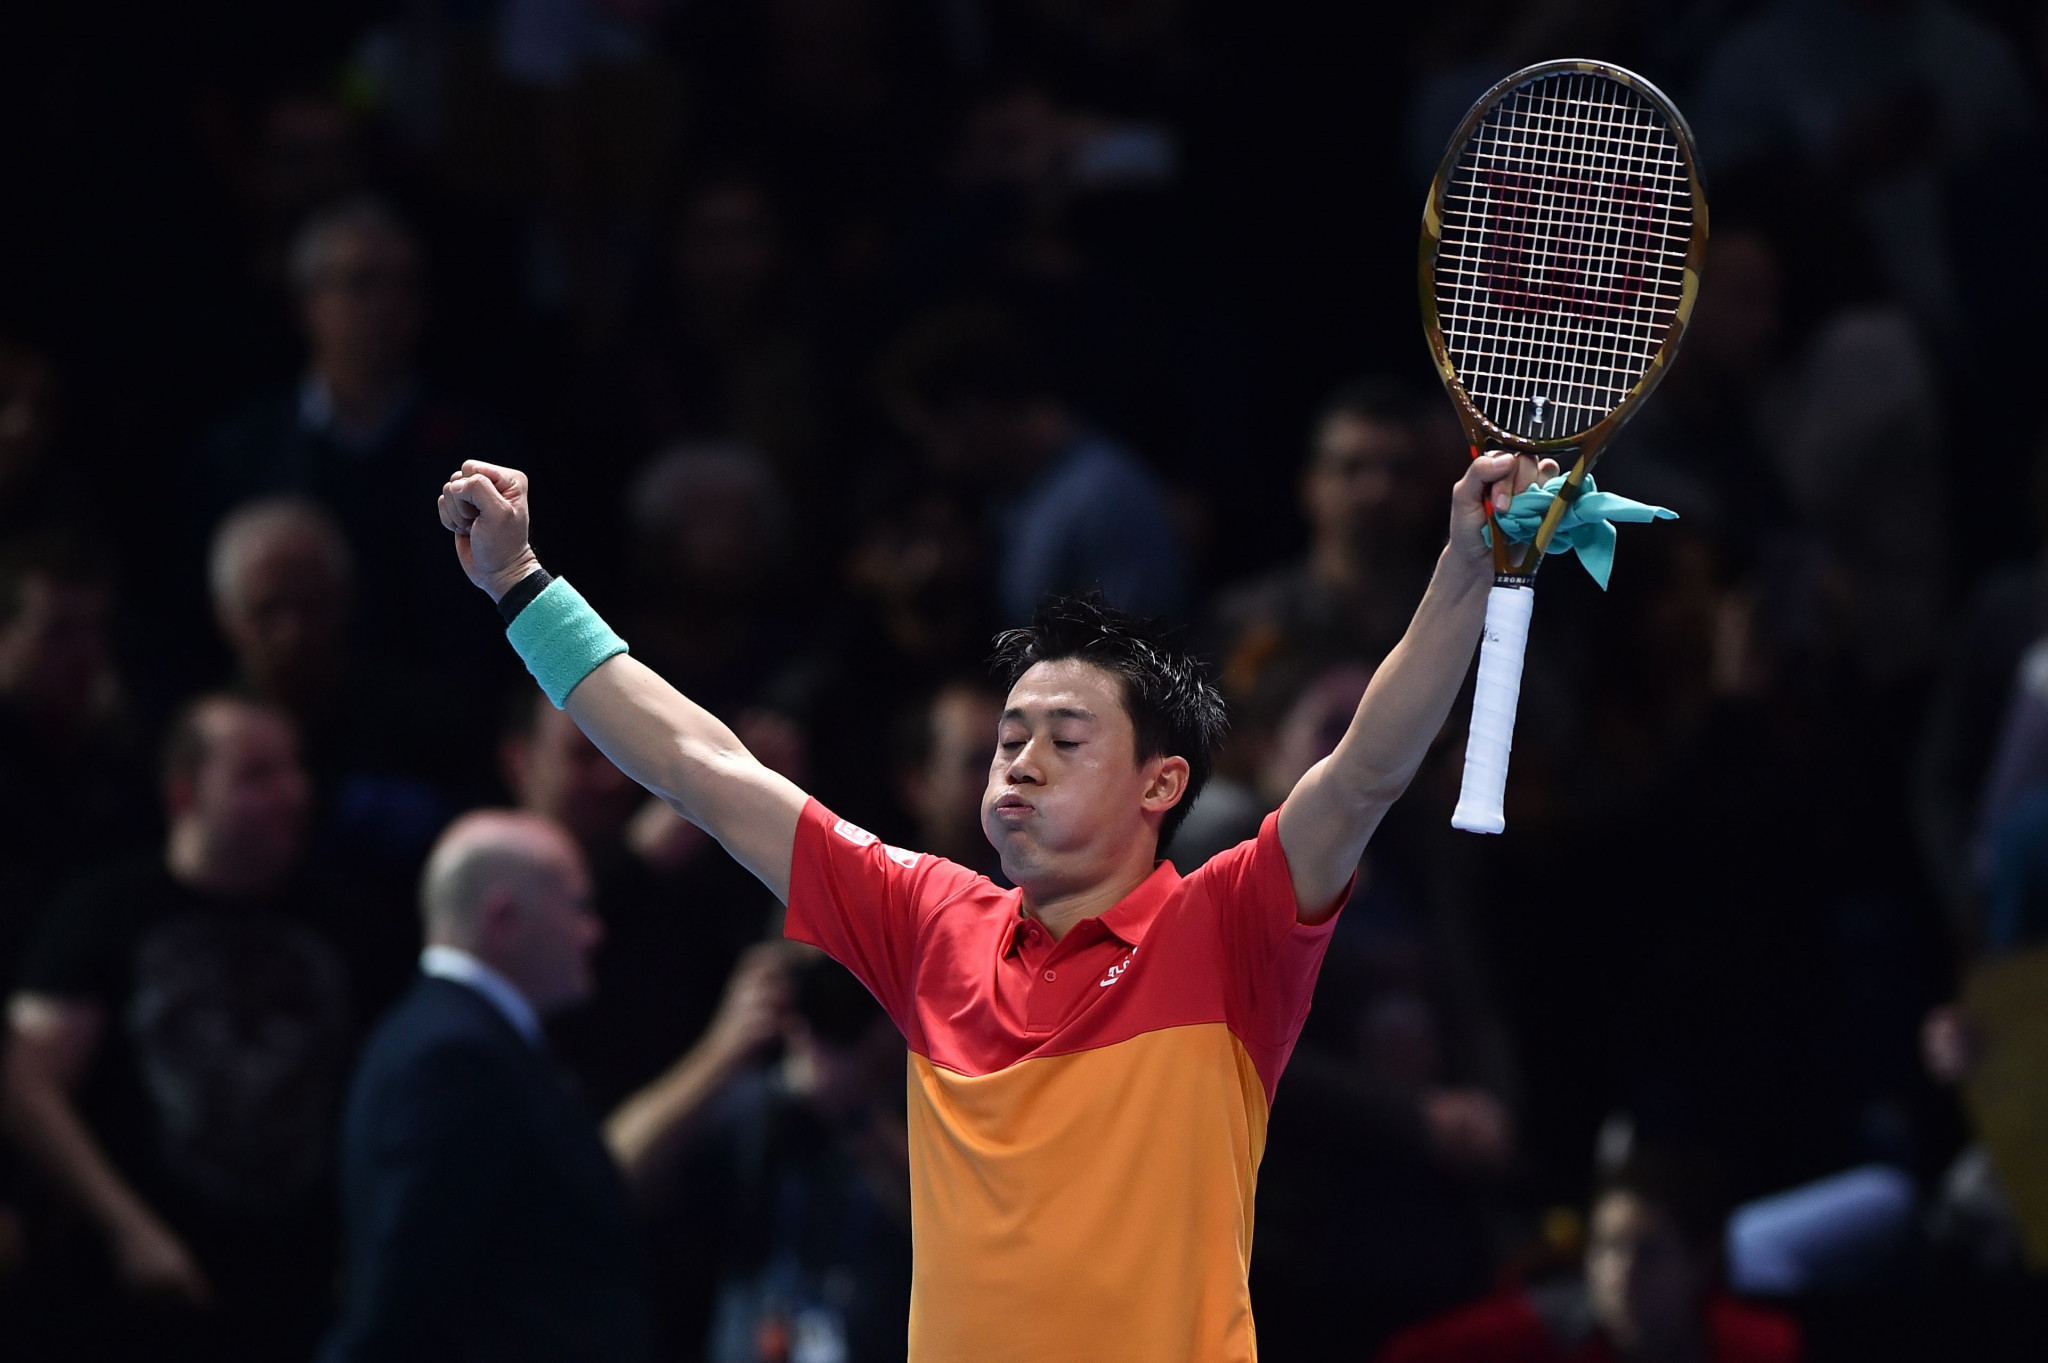 Nishikori shocks Federer in opening ATP Finals match with straight-sets win